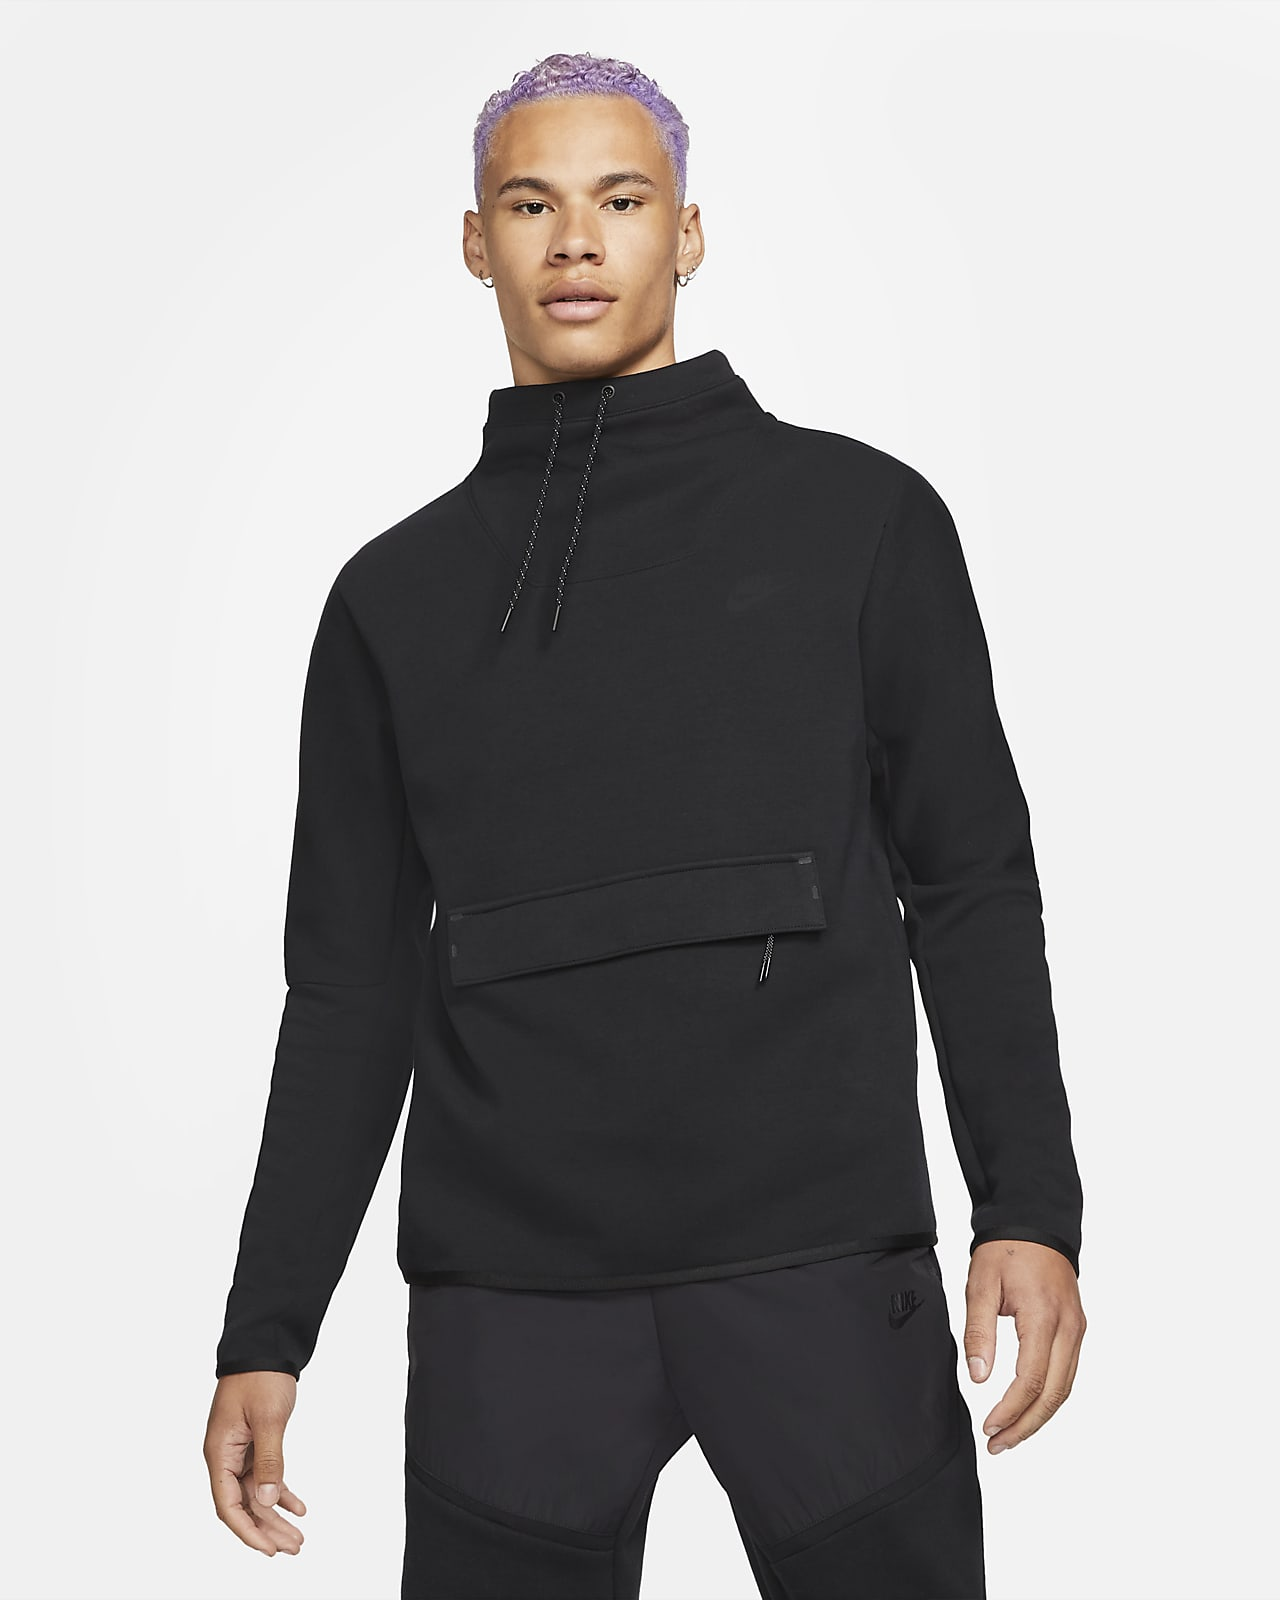 Nike Sportswear Tech Fleece Men's Long-Sleeve Funnel-Neck Top